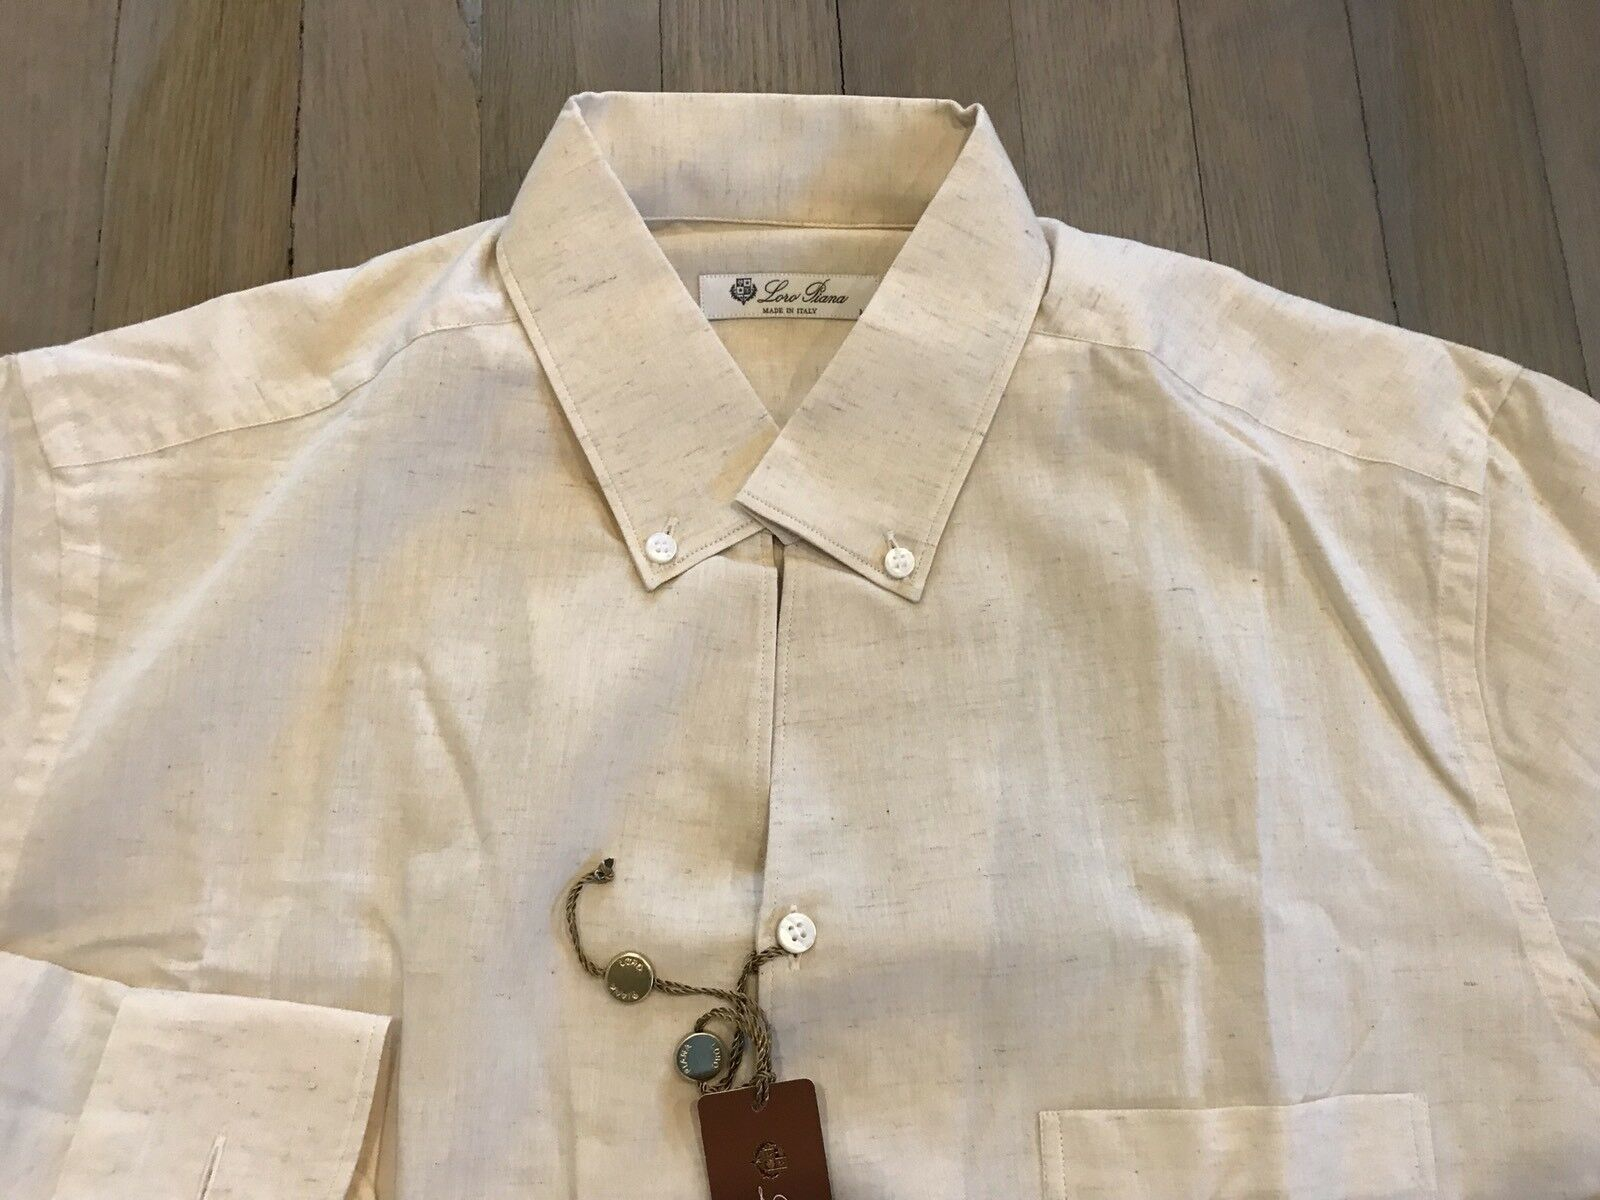 495  Lgold Piana Beige Cotton and Linen Shirt Size XXL Made in